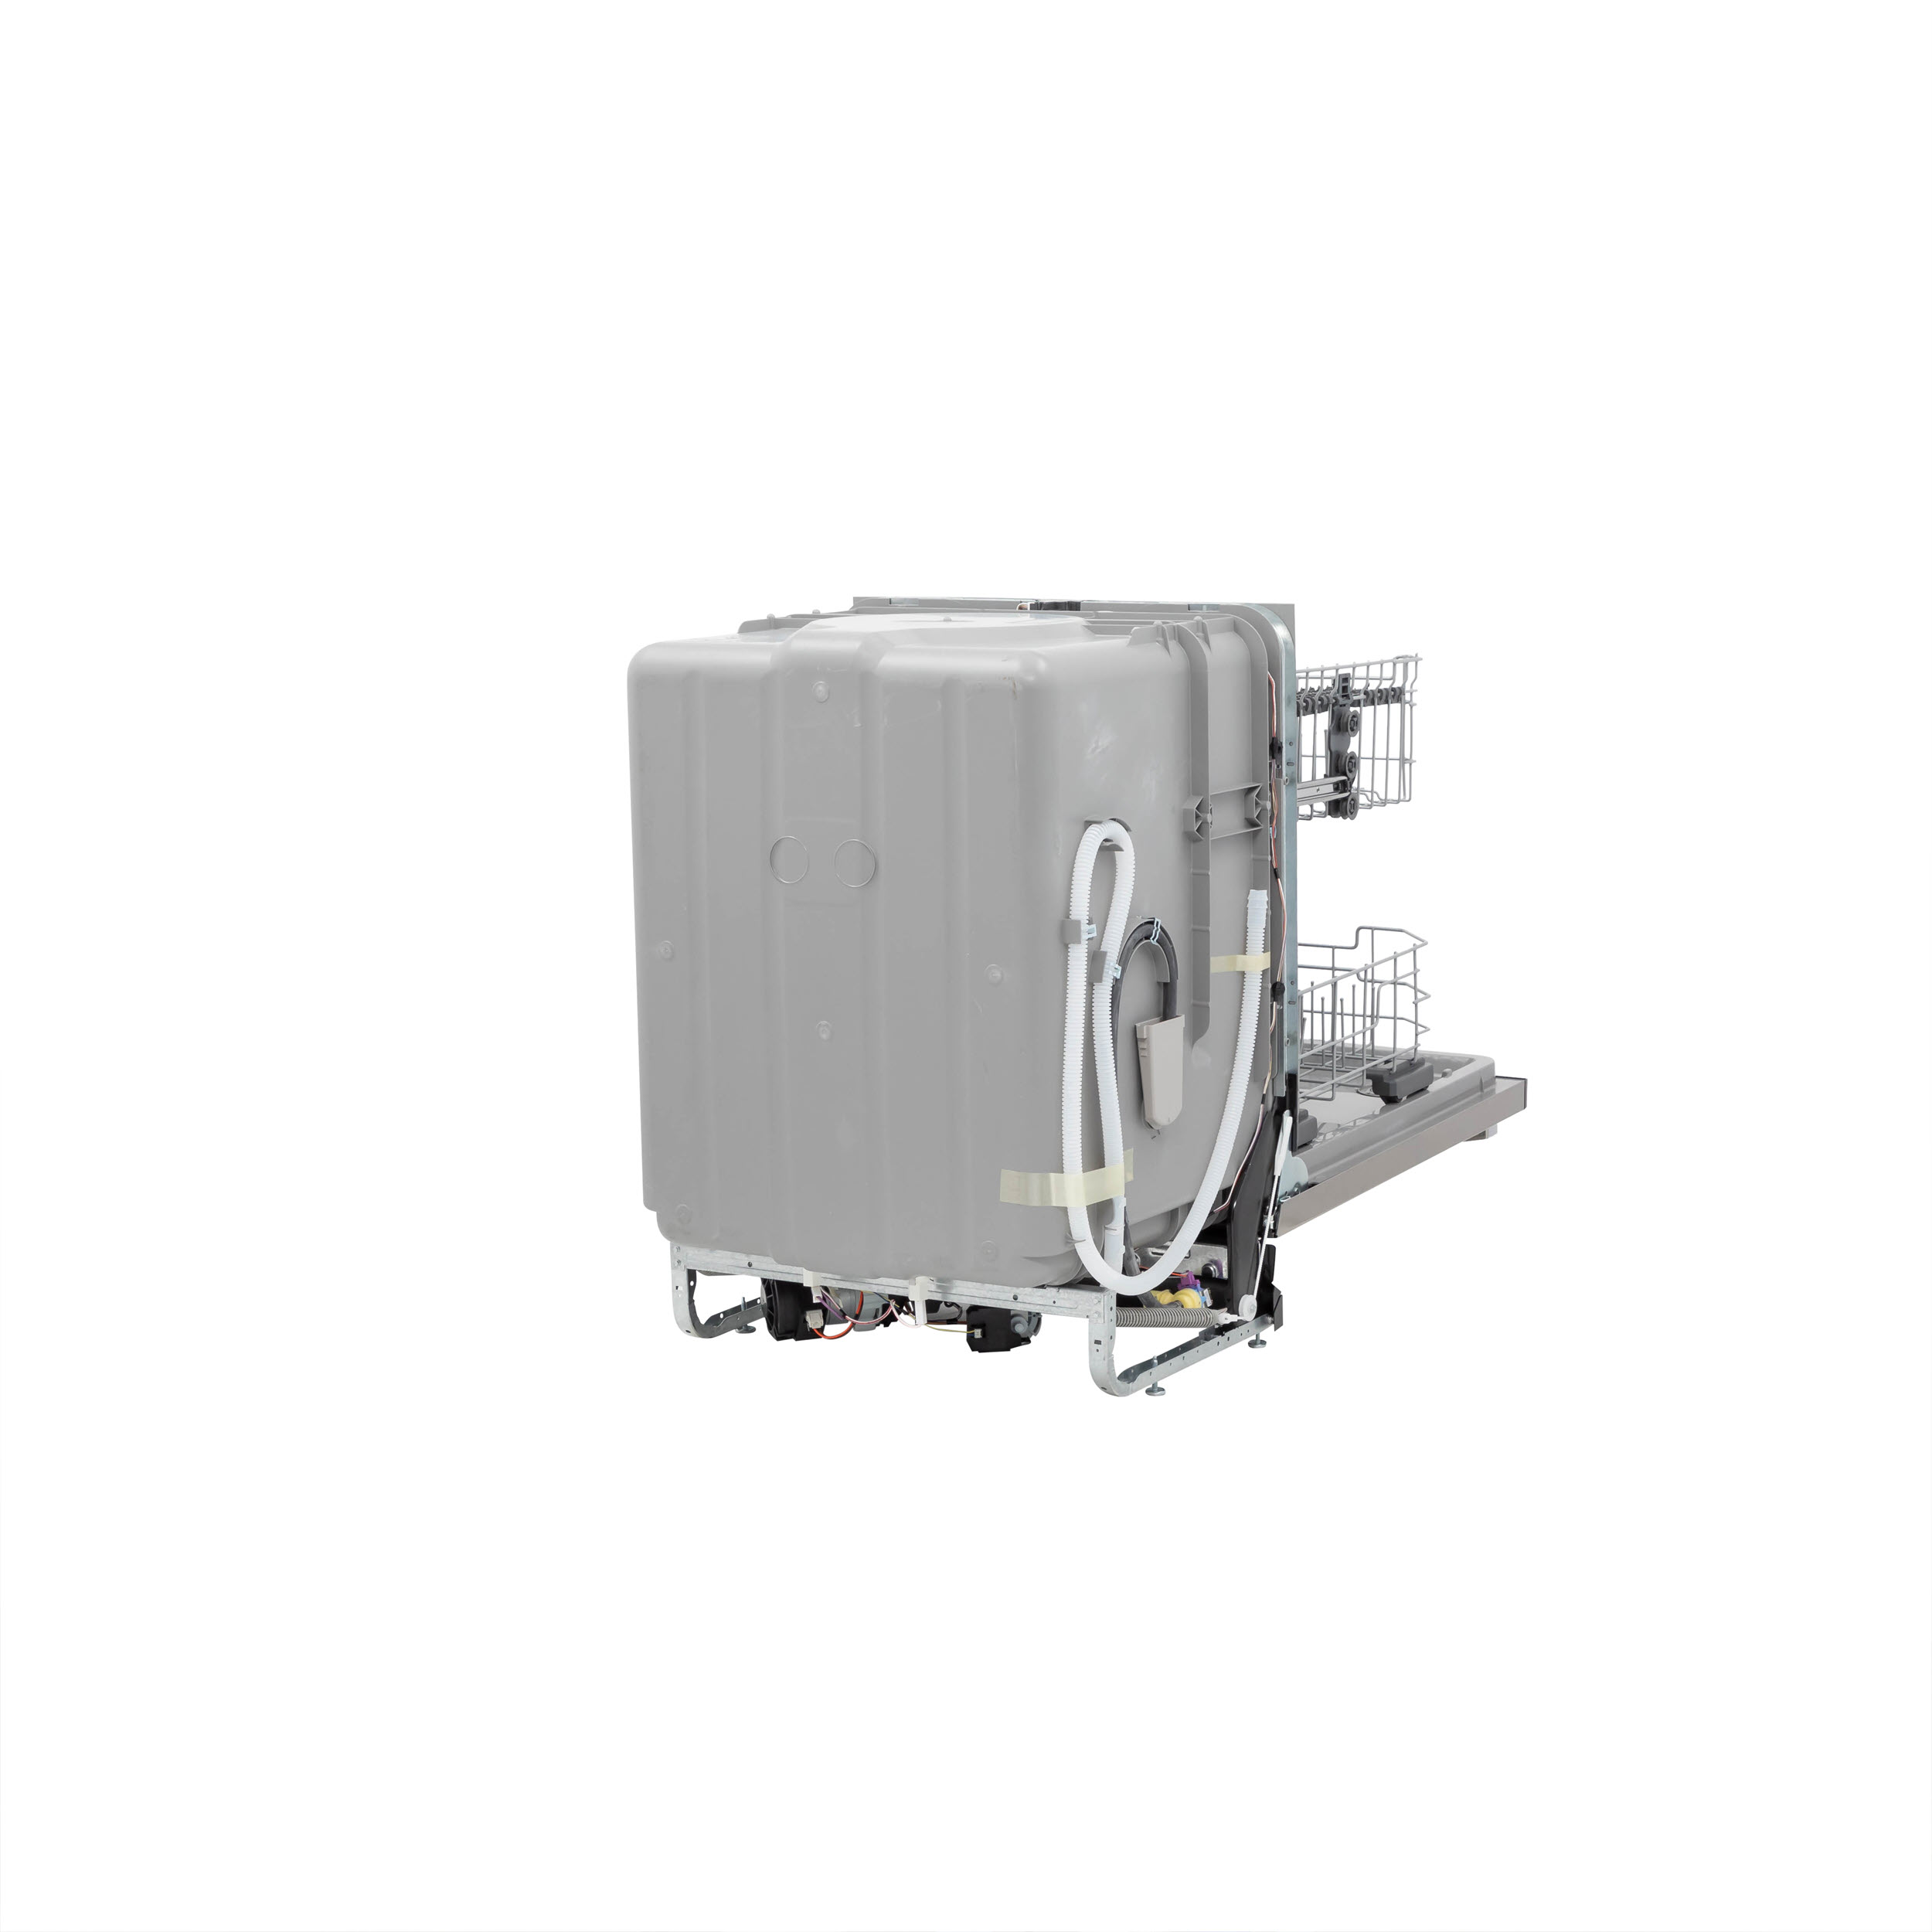 Model: GDT530PSPSS | GE GE® Top Control with Plastic Interior Dishwasher with Sanitize Cycle & Dry Boost